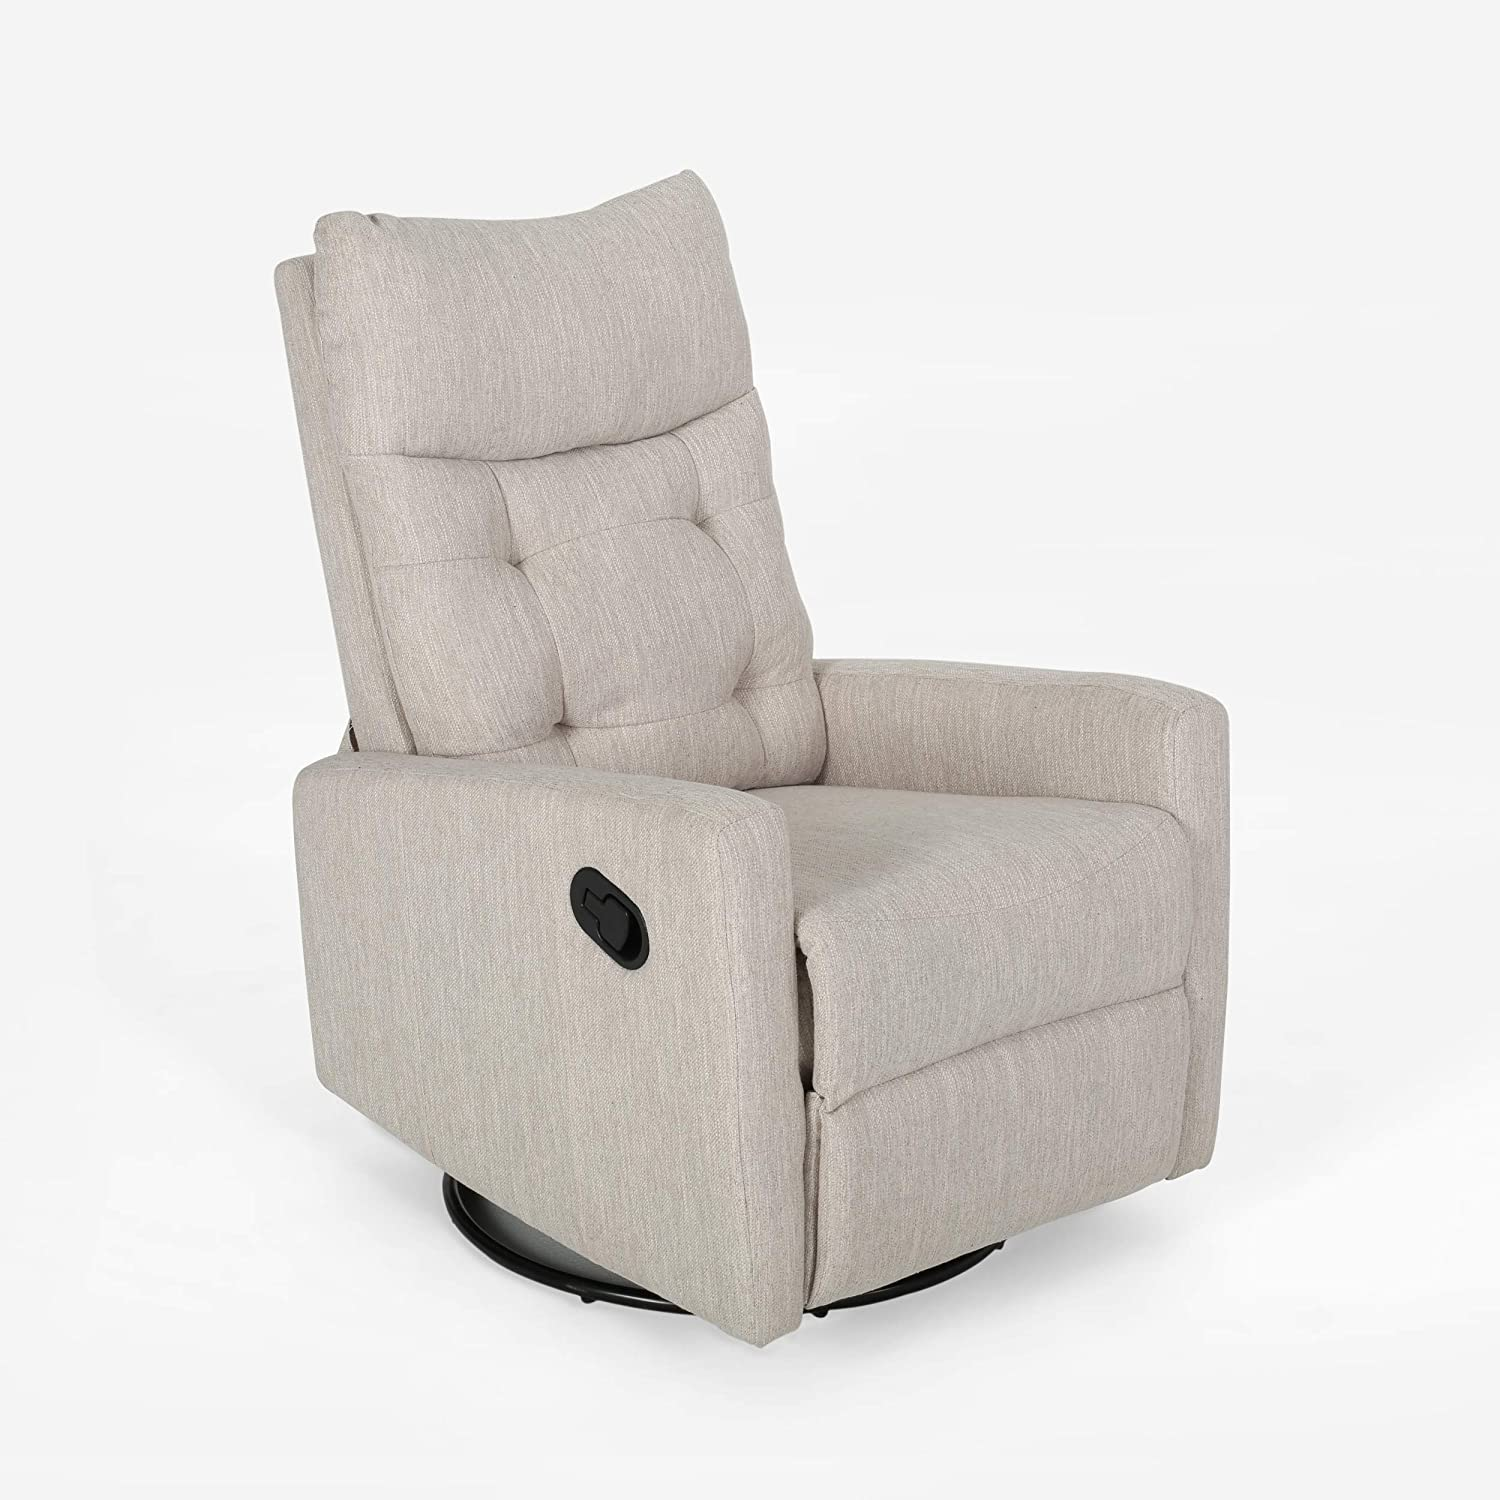 Christopher Knight Home Recliner - Recliners to Sleep